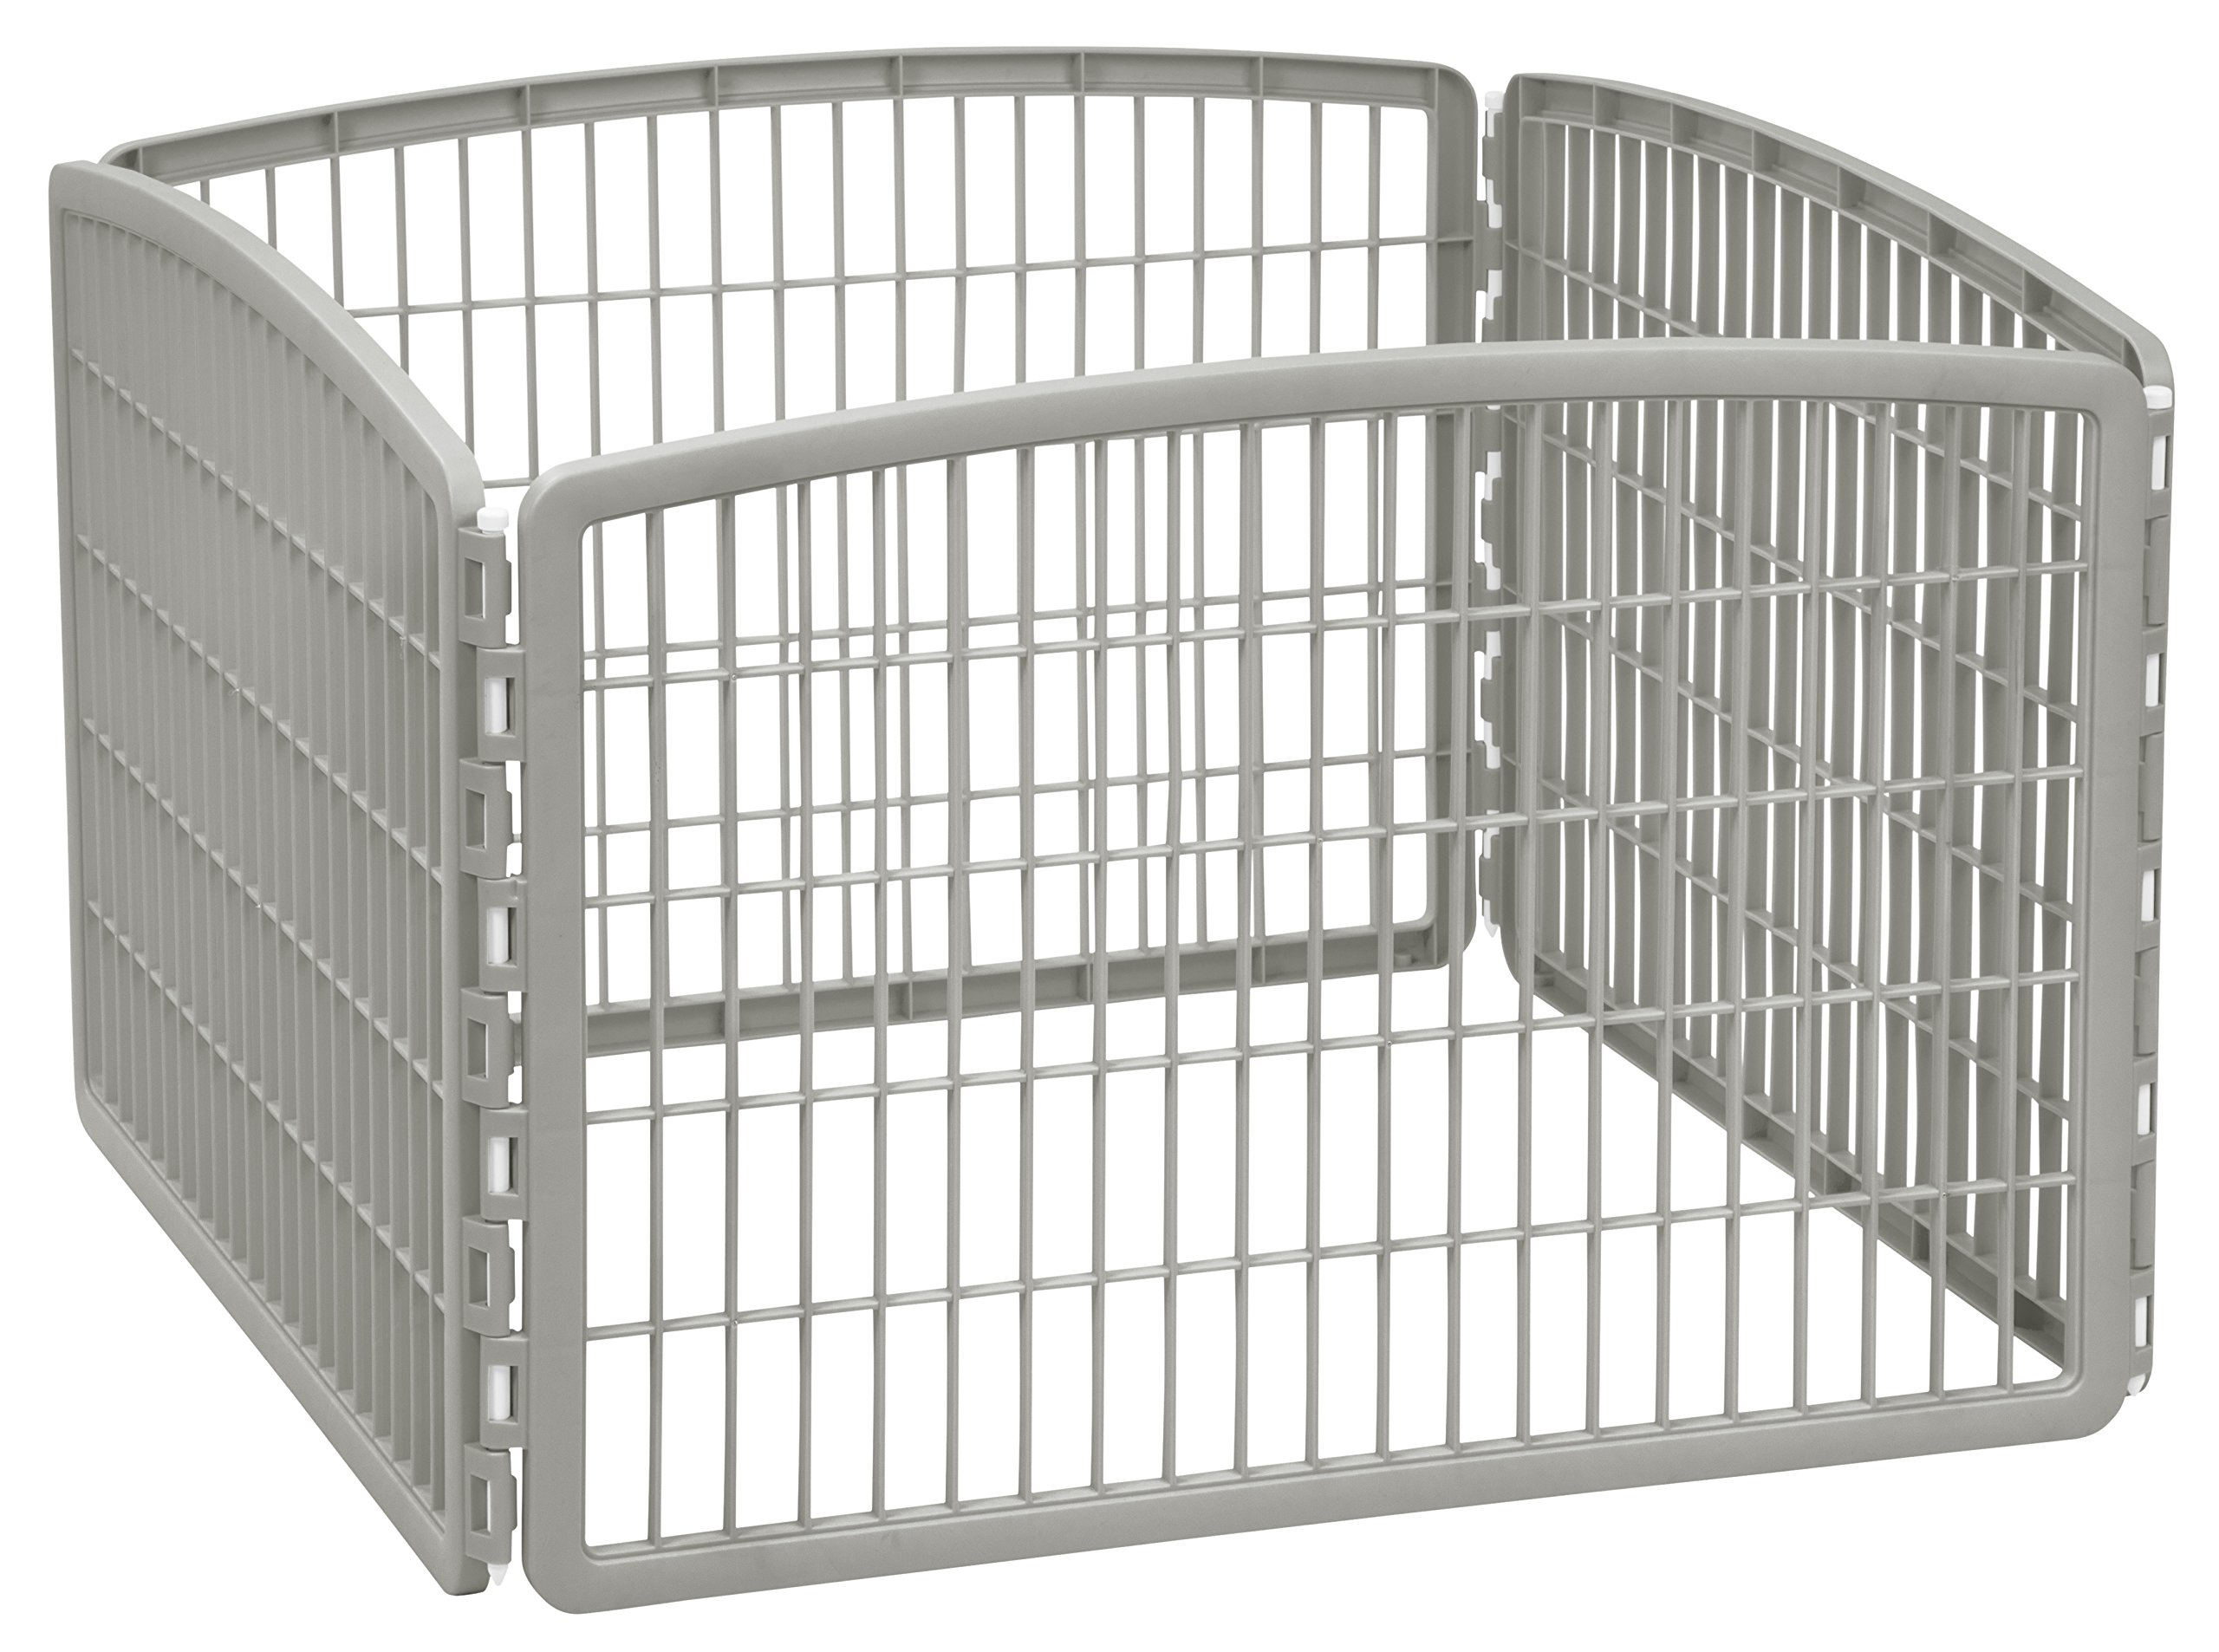 IRIS 24'' Exercise 4-Panel Pet Playpen without Door, Chrome by IRIS USA, Inc.